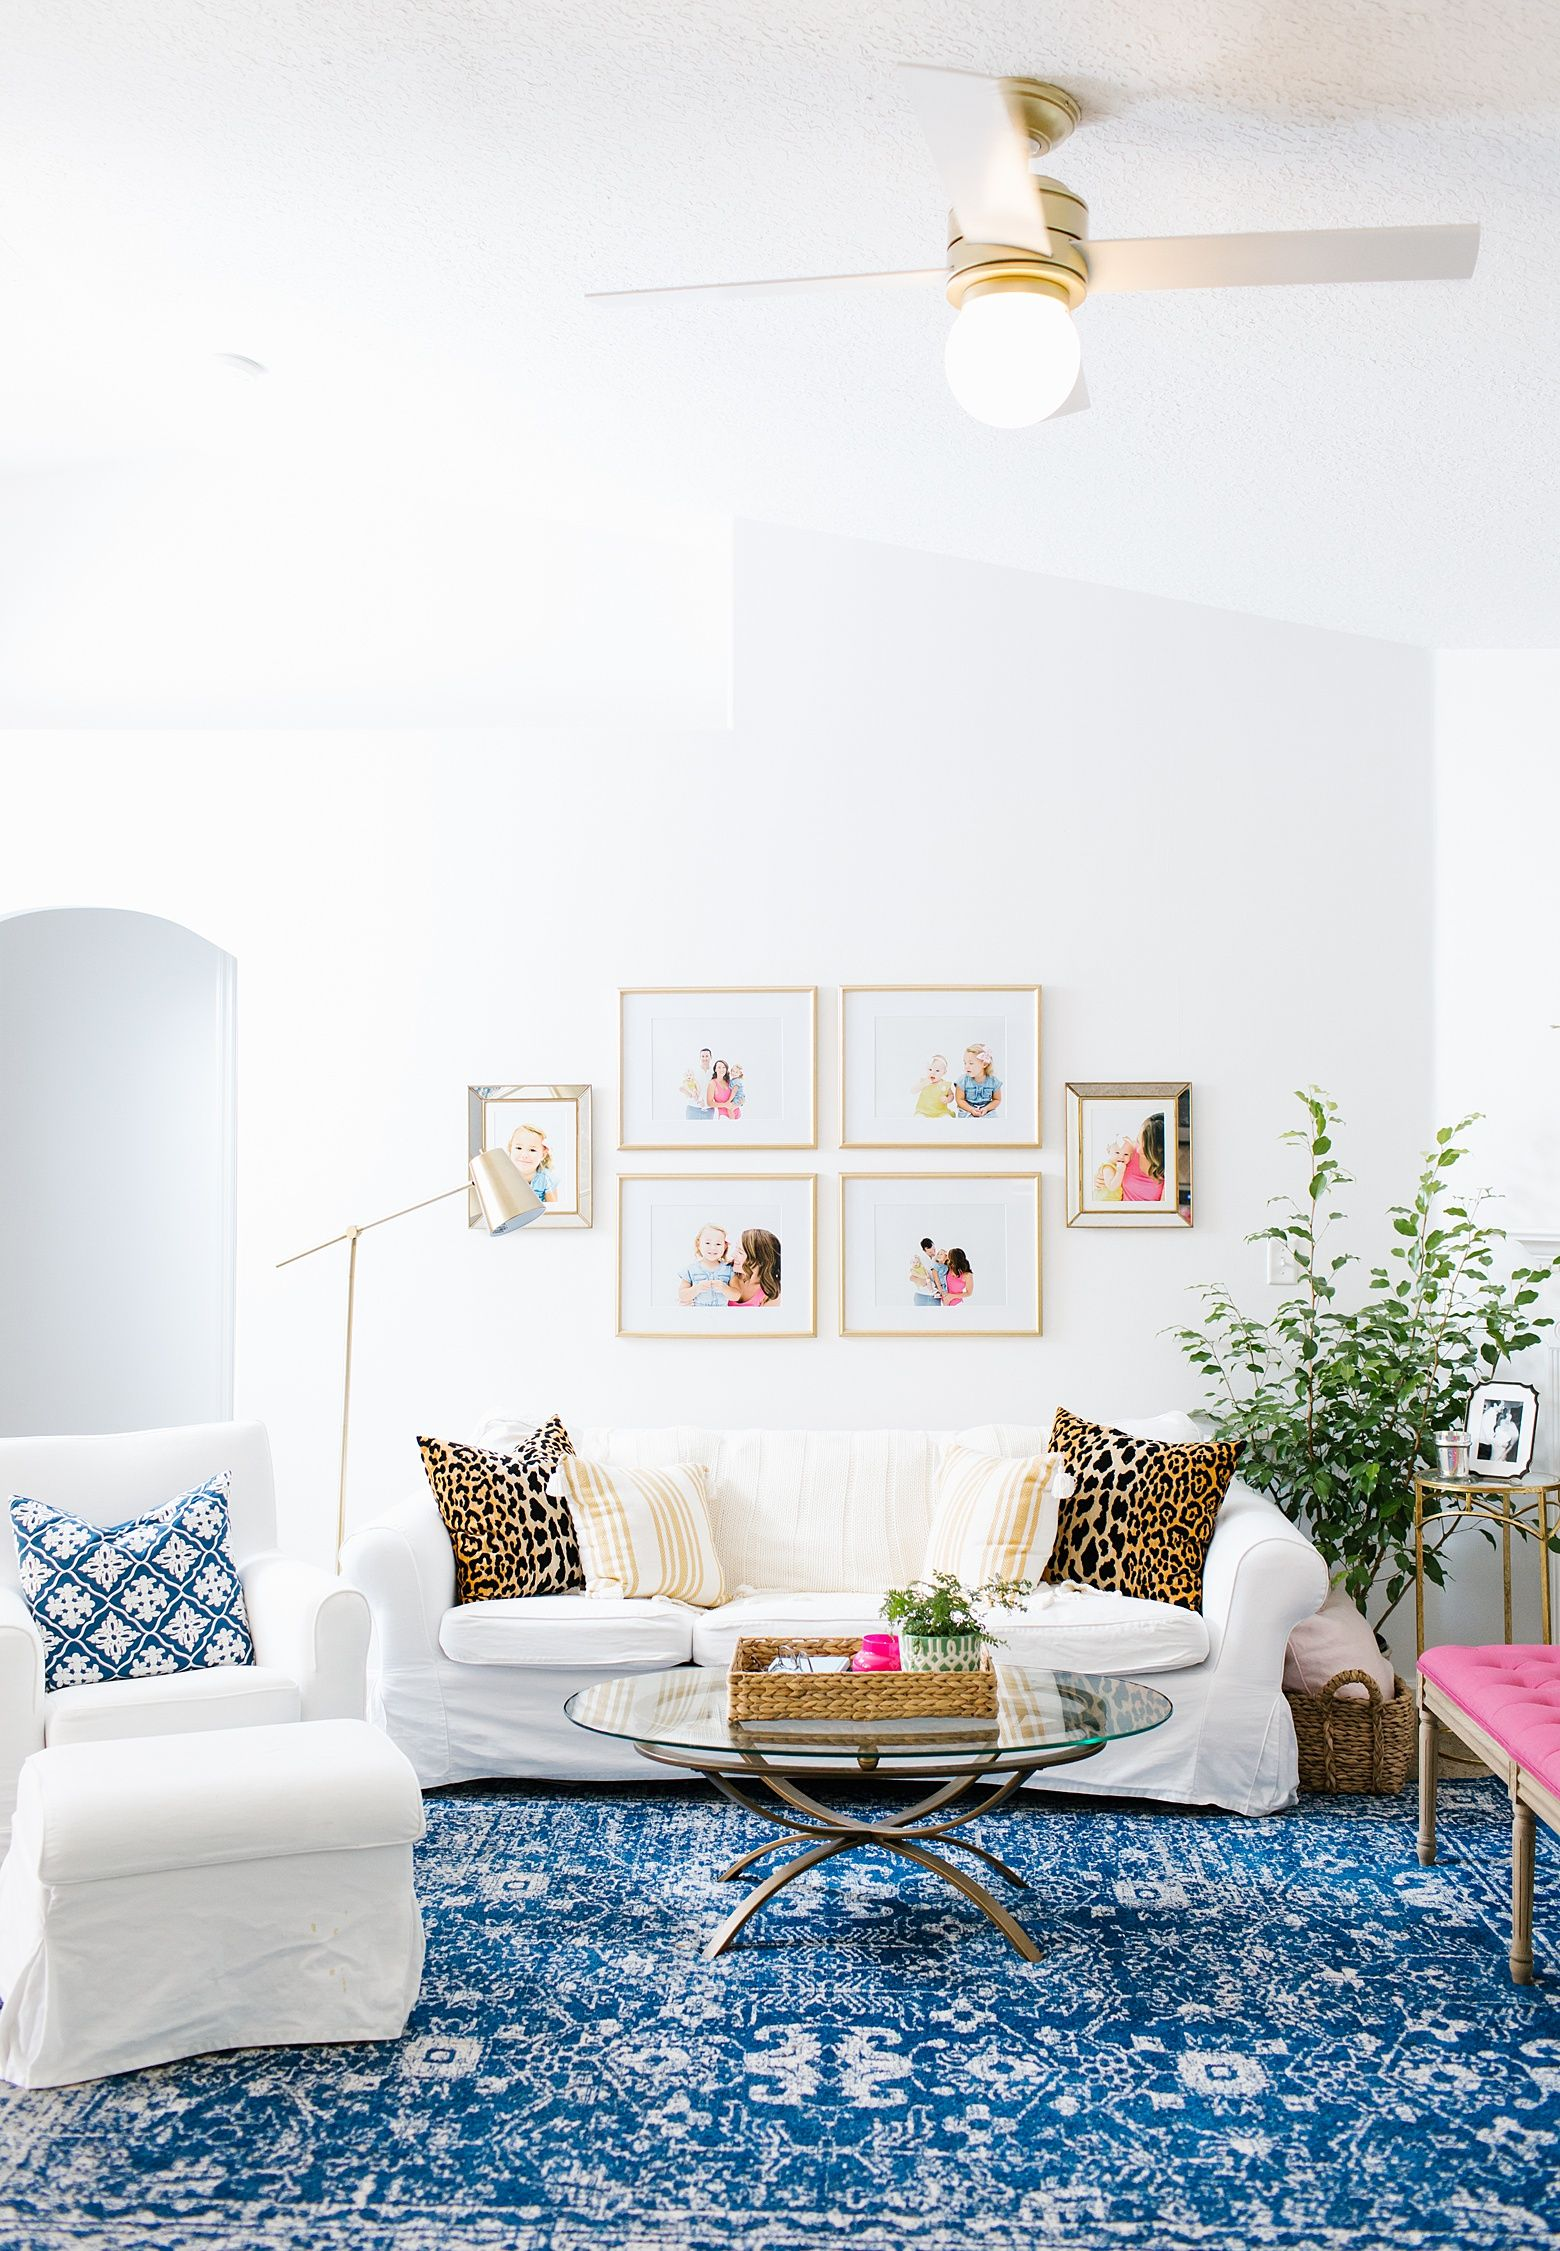 Family Friendly, Bright and Colorful Living Room | Pinterest ...